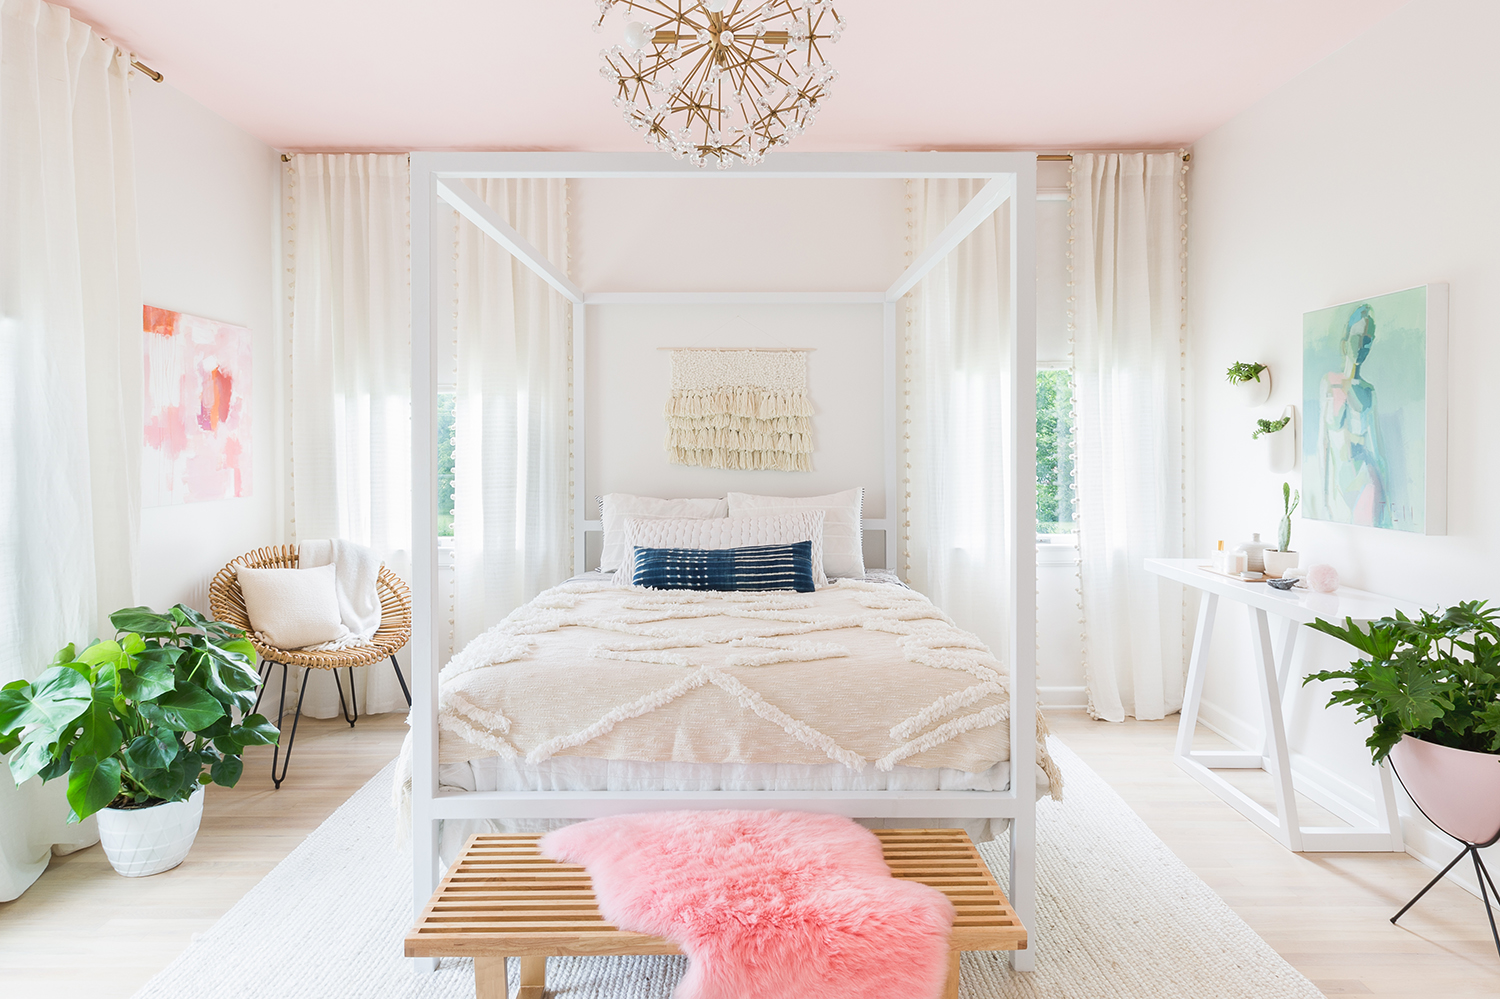 A Beautiful Mess Photo By Alyssarosenheck Here S Our White Bedroom